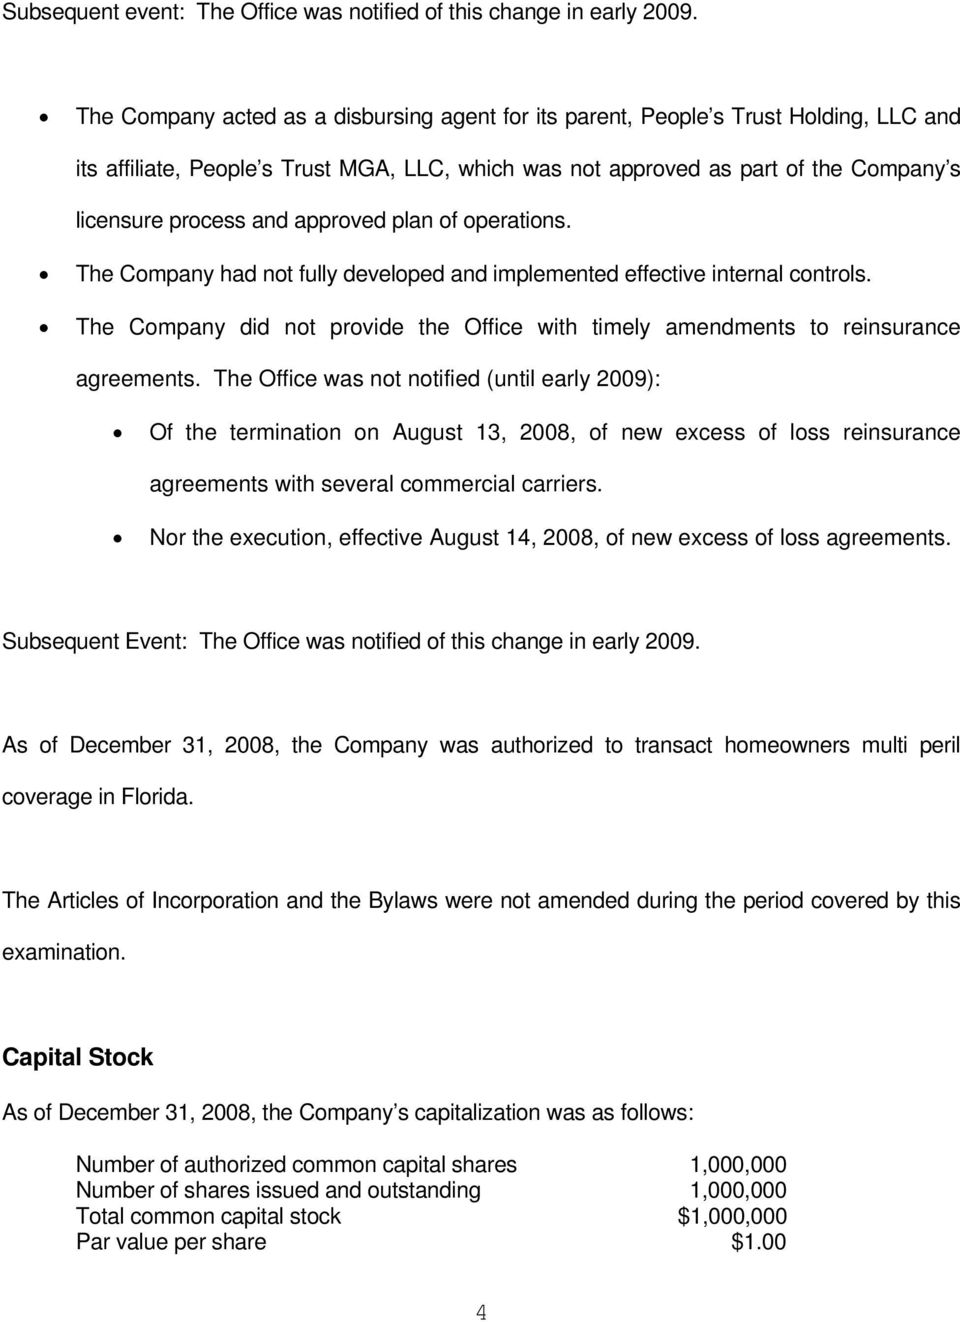 approved plan of operations. The Company had not fully developed and implemented effective internal controls. The Company did not provide the Office with timely amendments to reinsurance agreements.